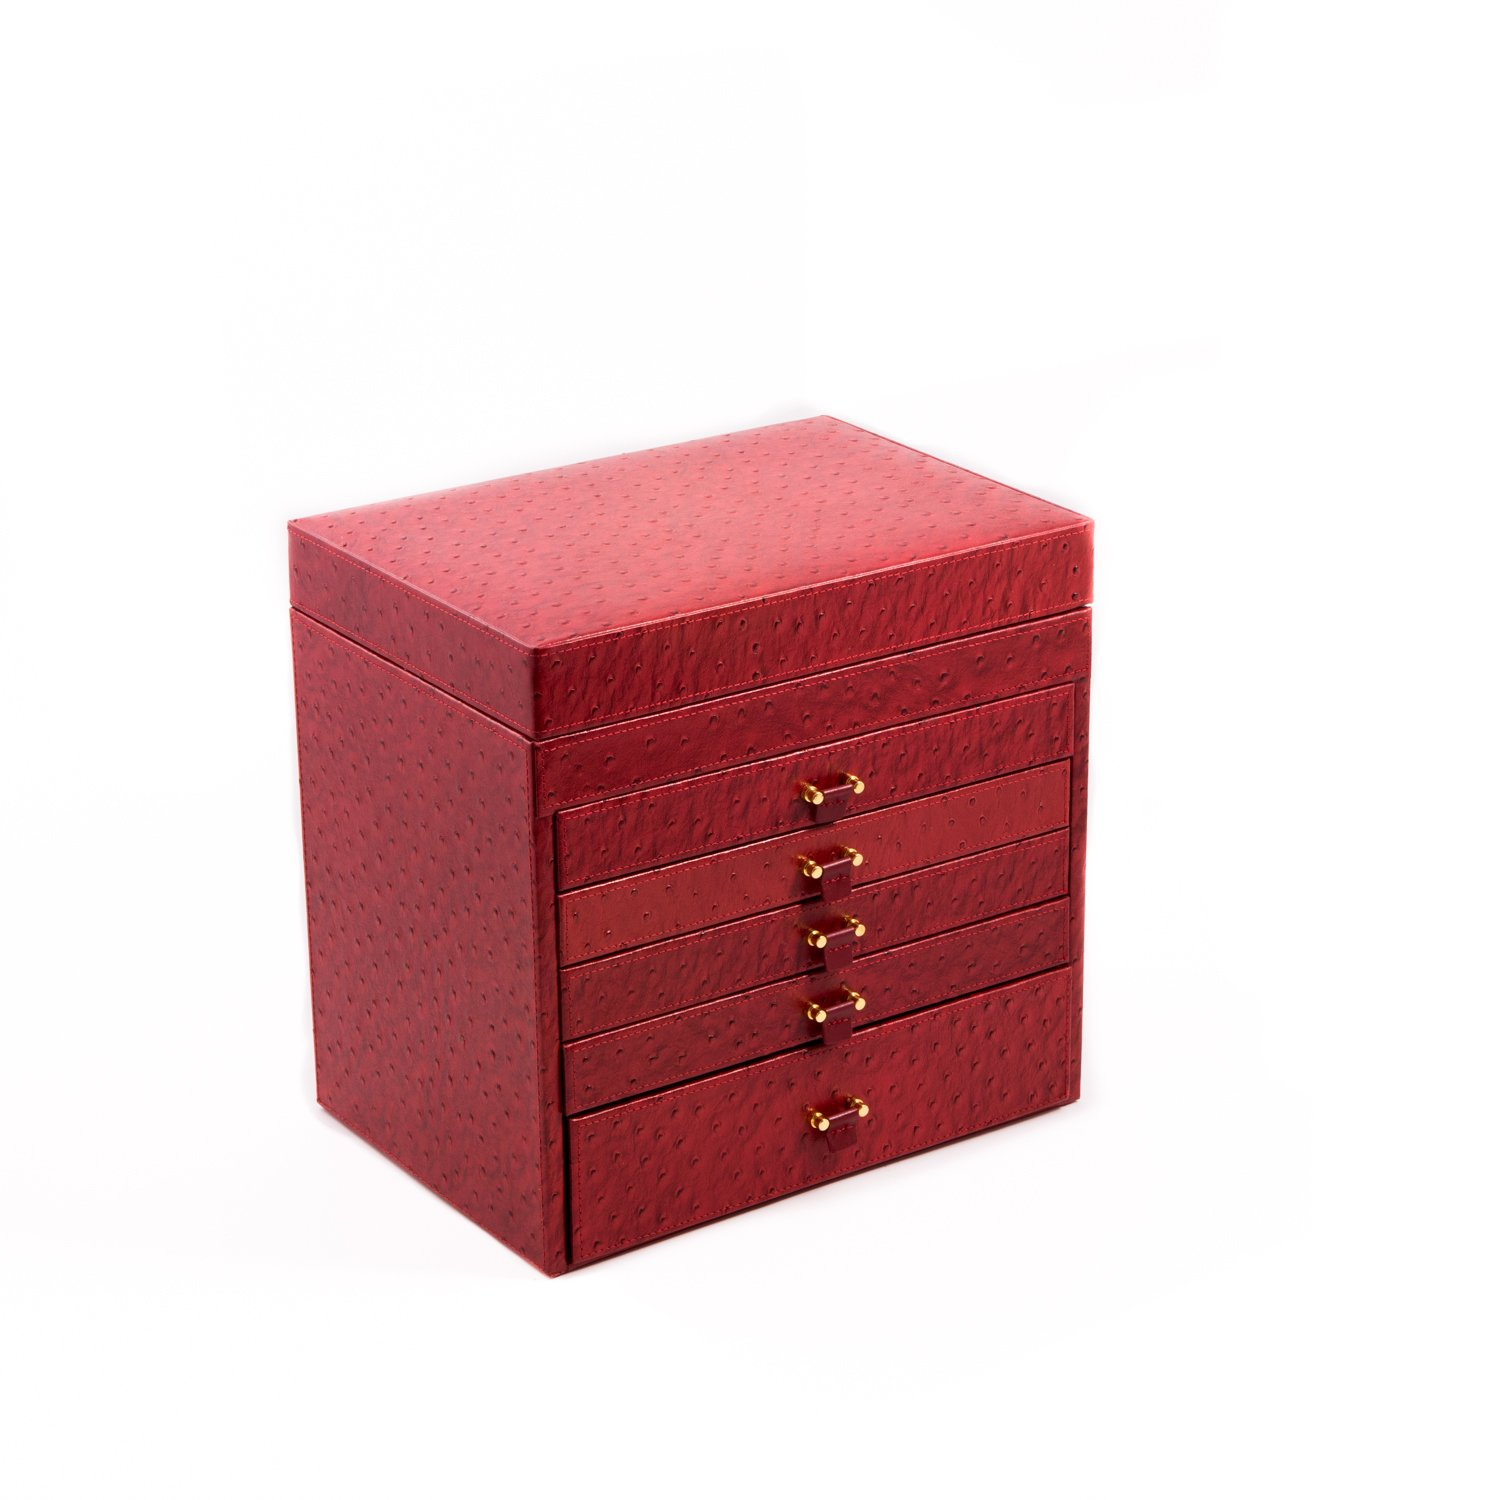 Time Factory AJ-BB589RED ''Ostrich'' Leather Jewelry Chest with Removable Travel Case, 5 Drawers and Top Tray with Mirror, Red by The Time Factory